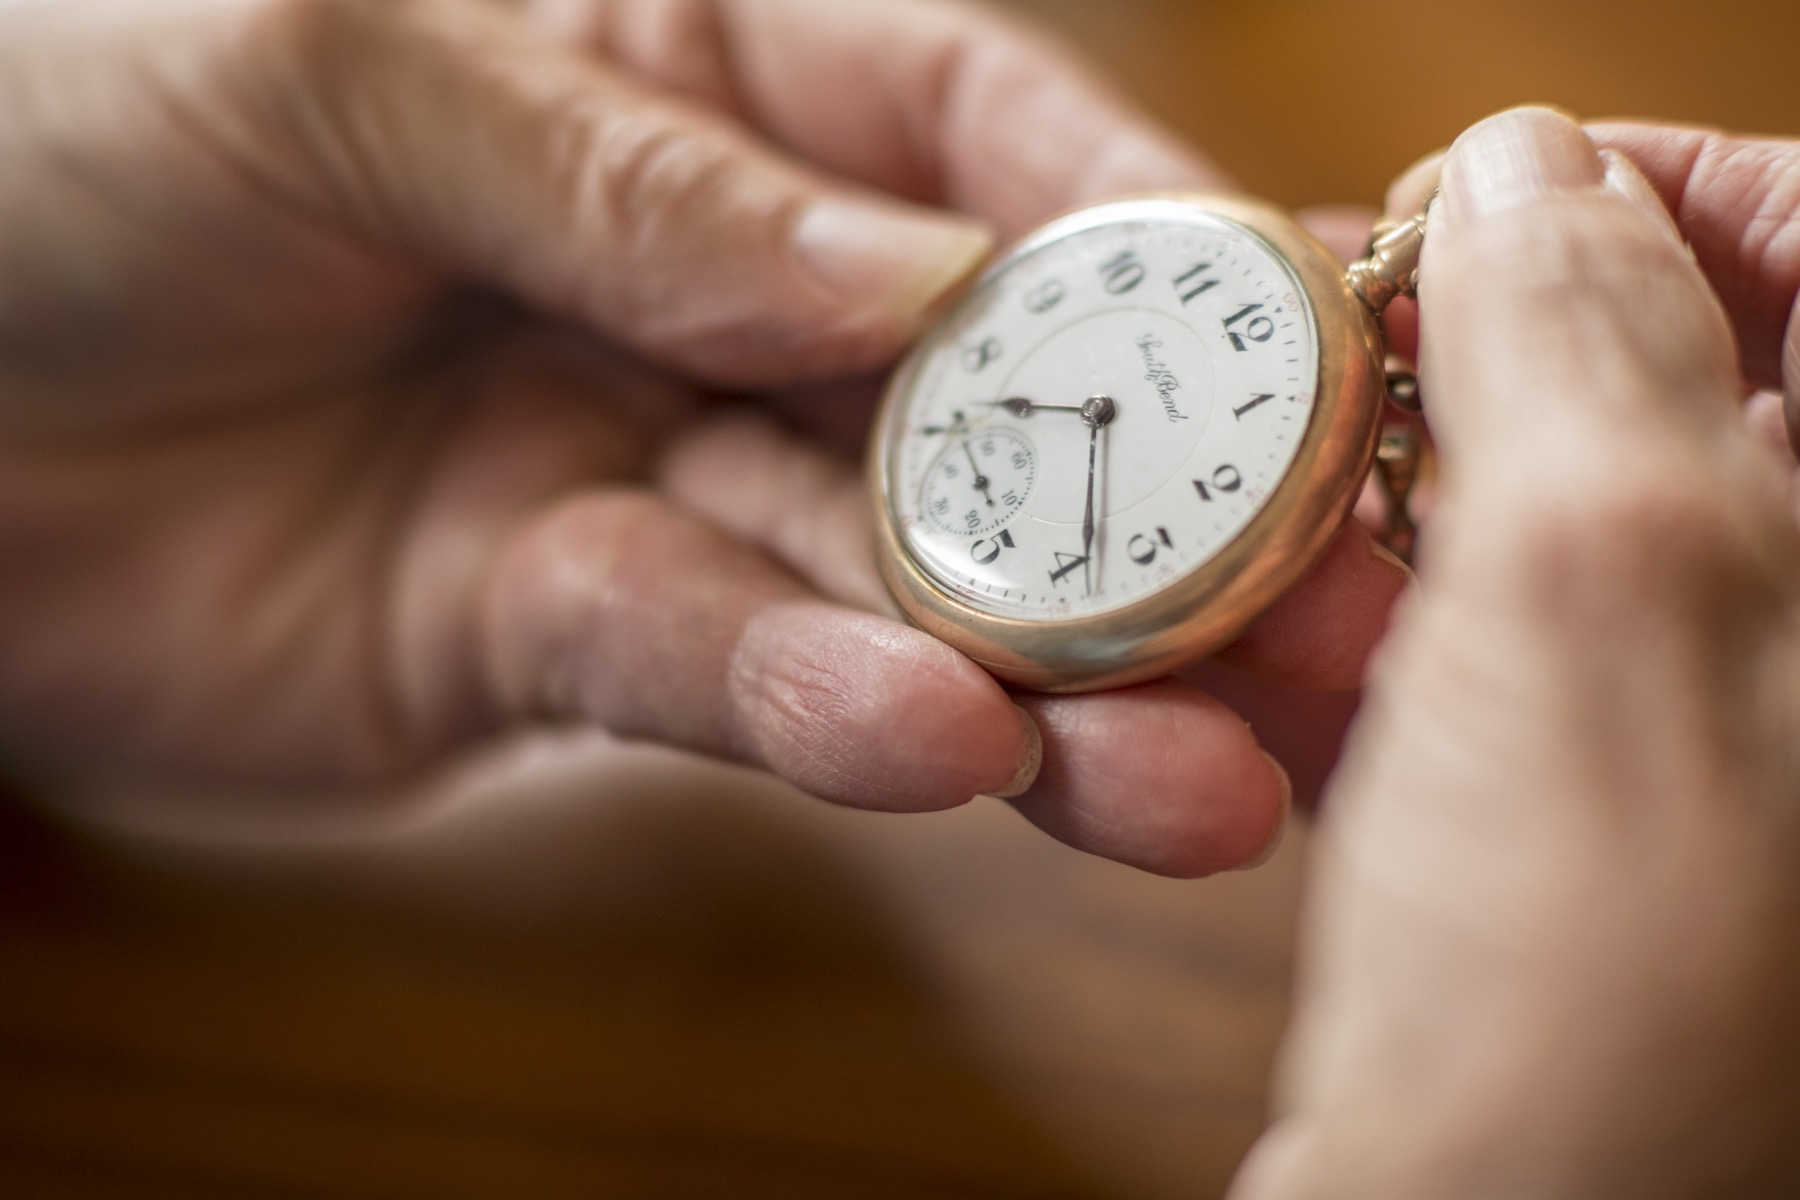 Caregiving responsibilities are ahead—but time is my most valuable resource.